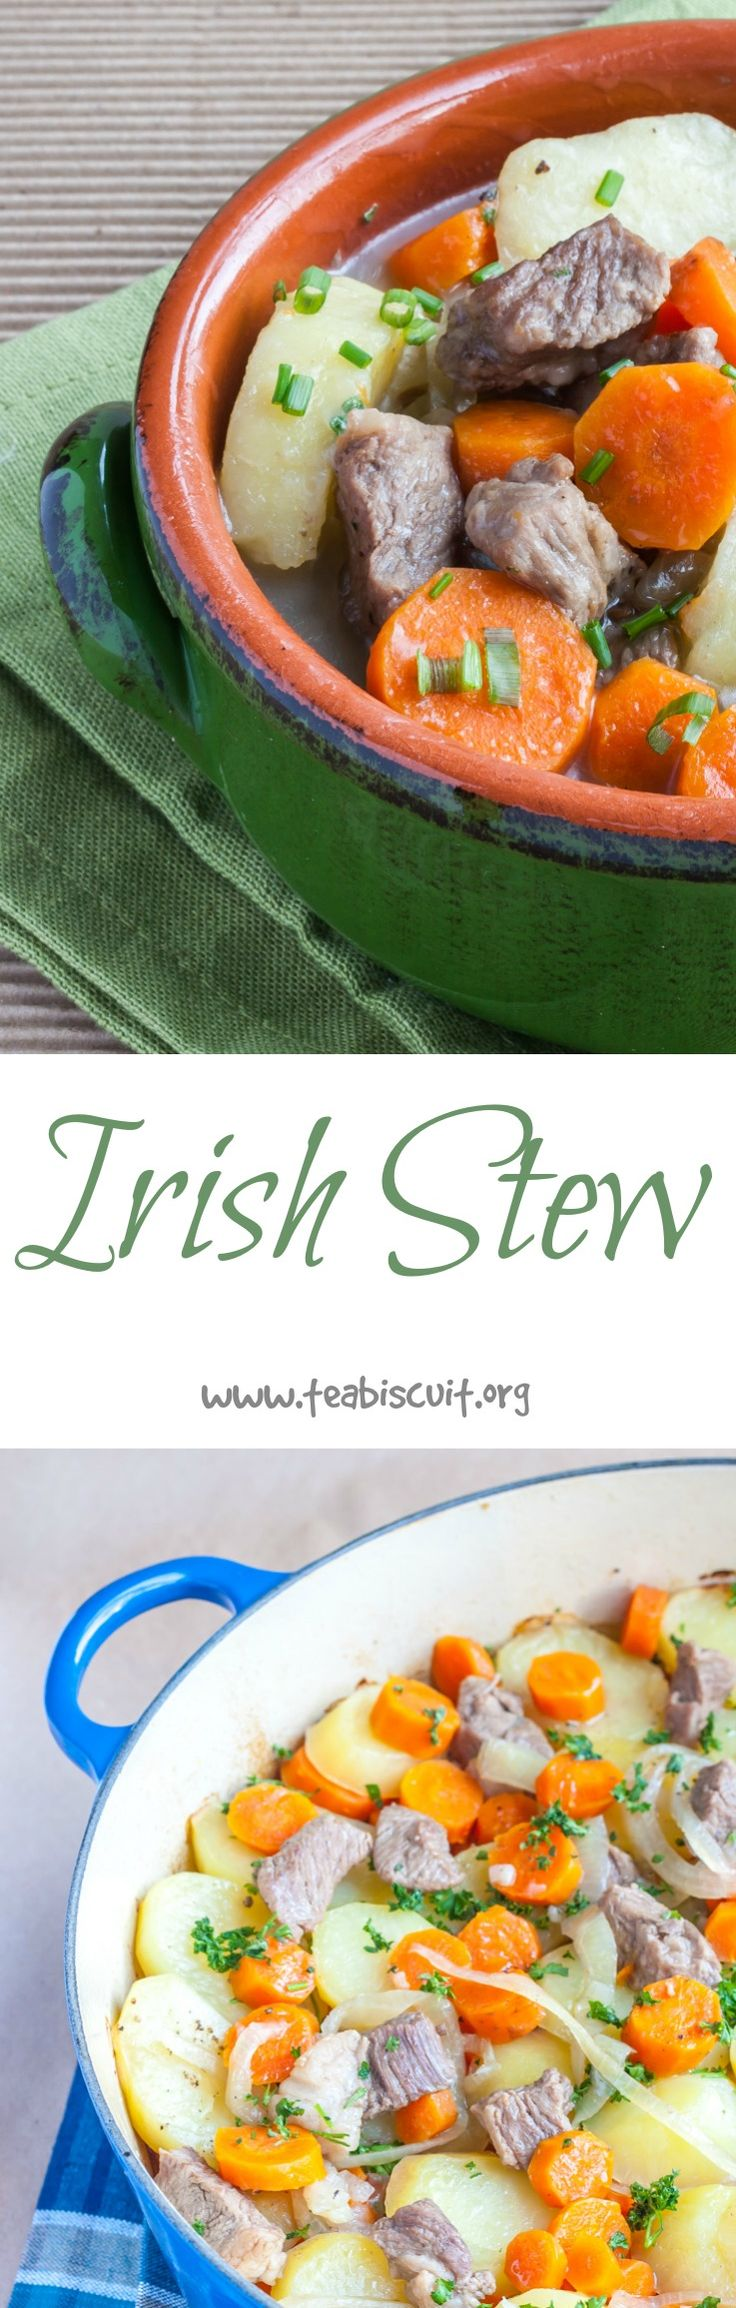 You don't need to wait until St Patrick's Day to enjoy this traditional Irish Stew recipe! | www.teabiscuit.org